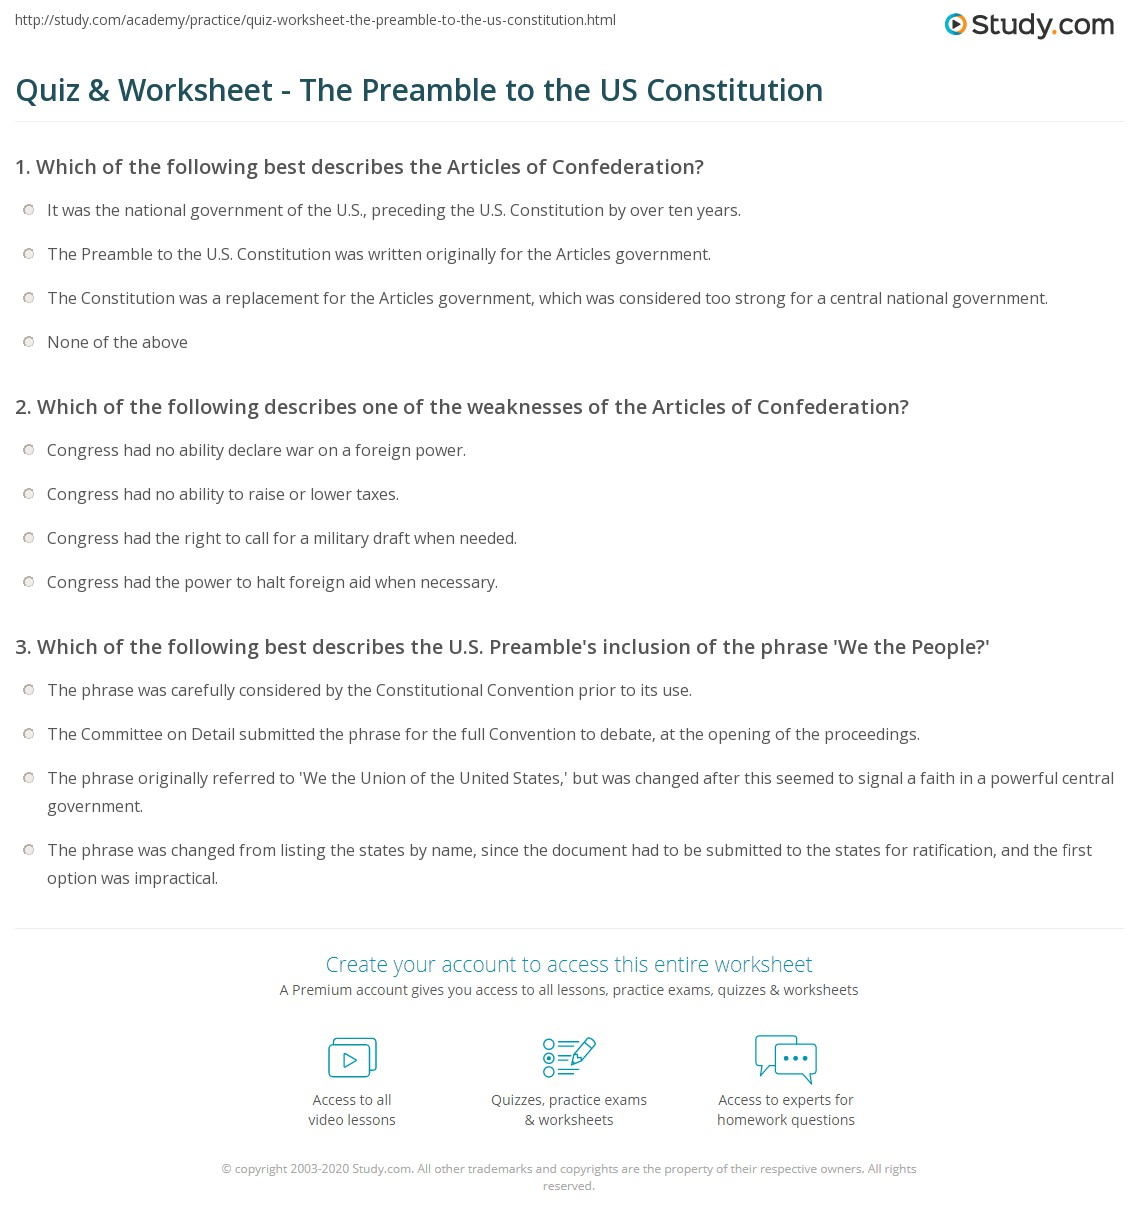 ... Of The Articles Confederation Worksheet Answers - Worksheets